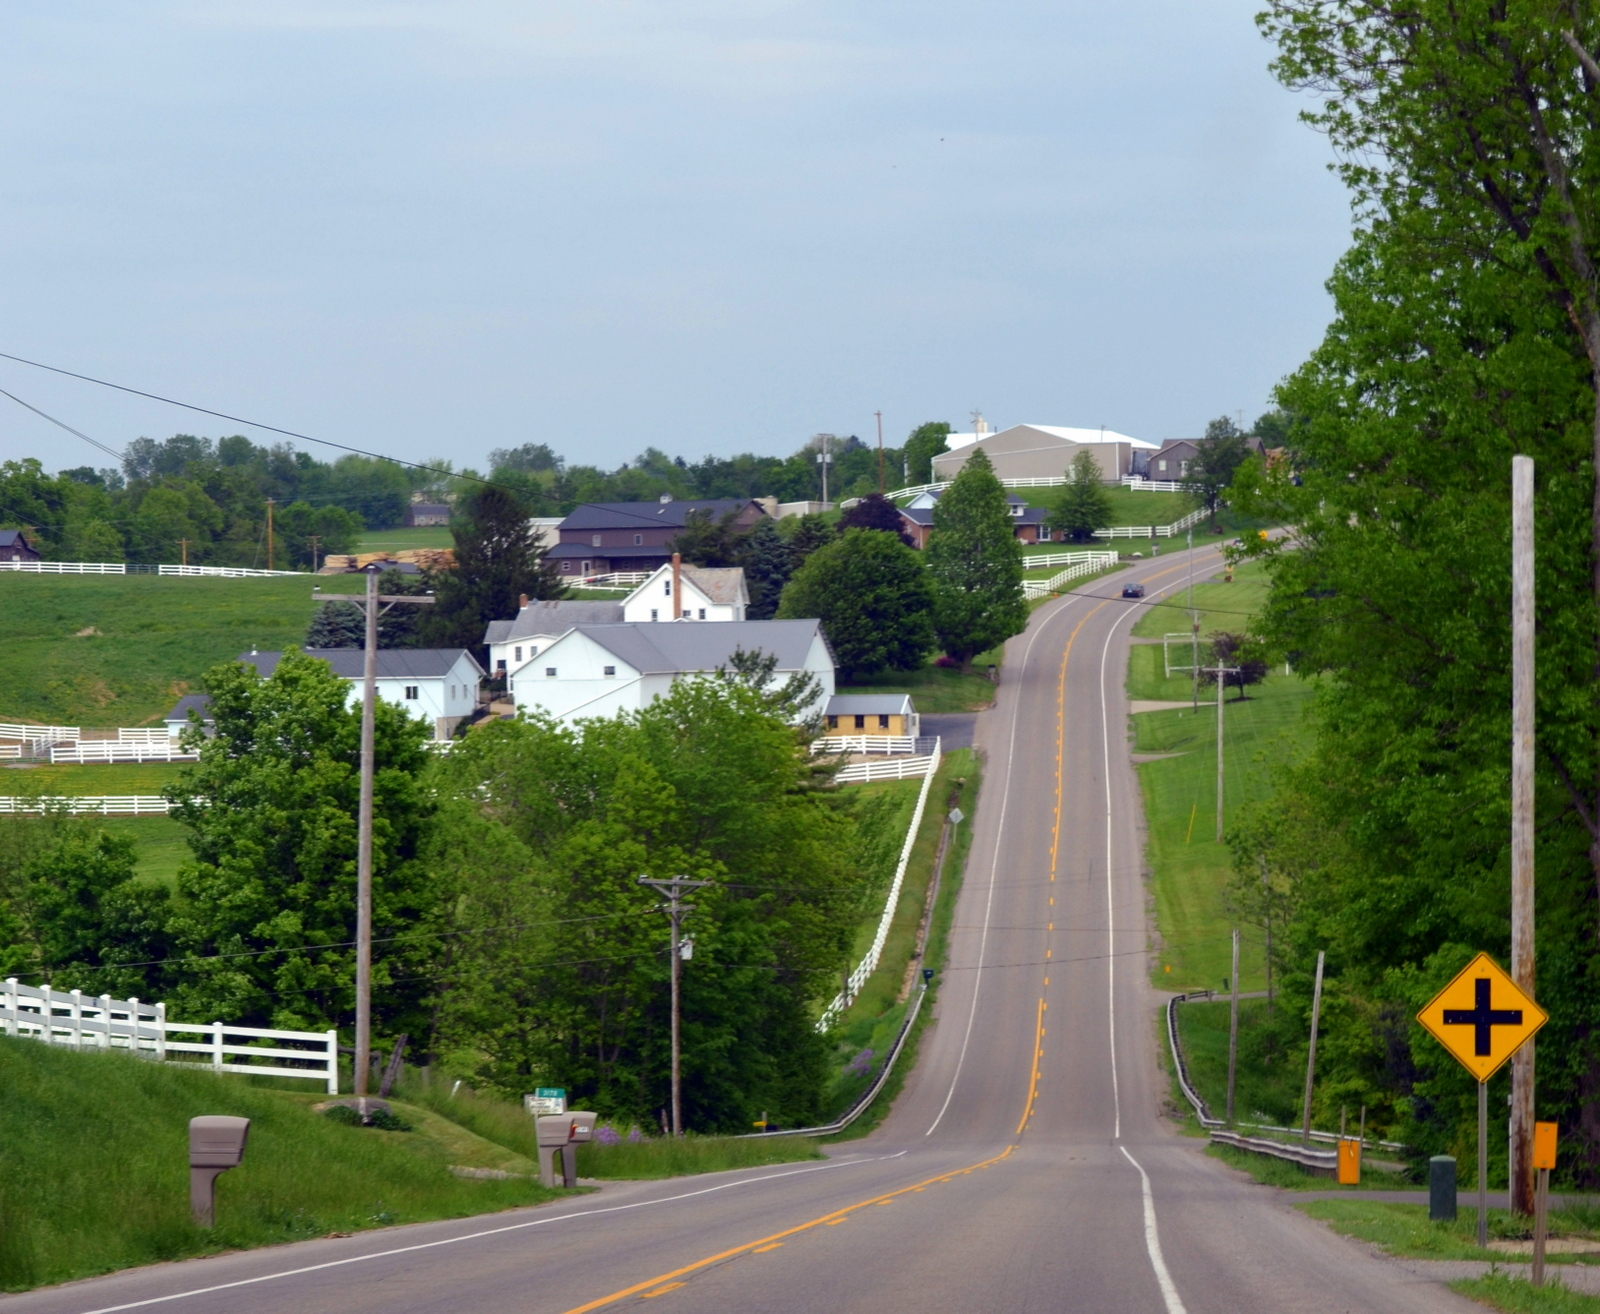 Amish Country in Ohio